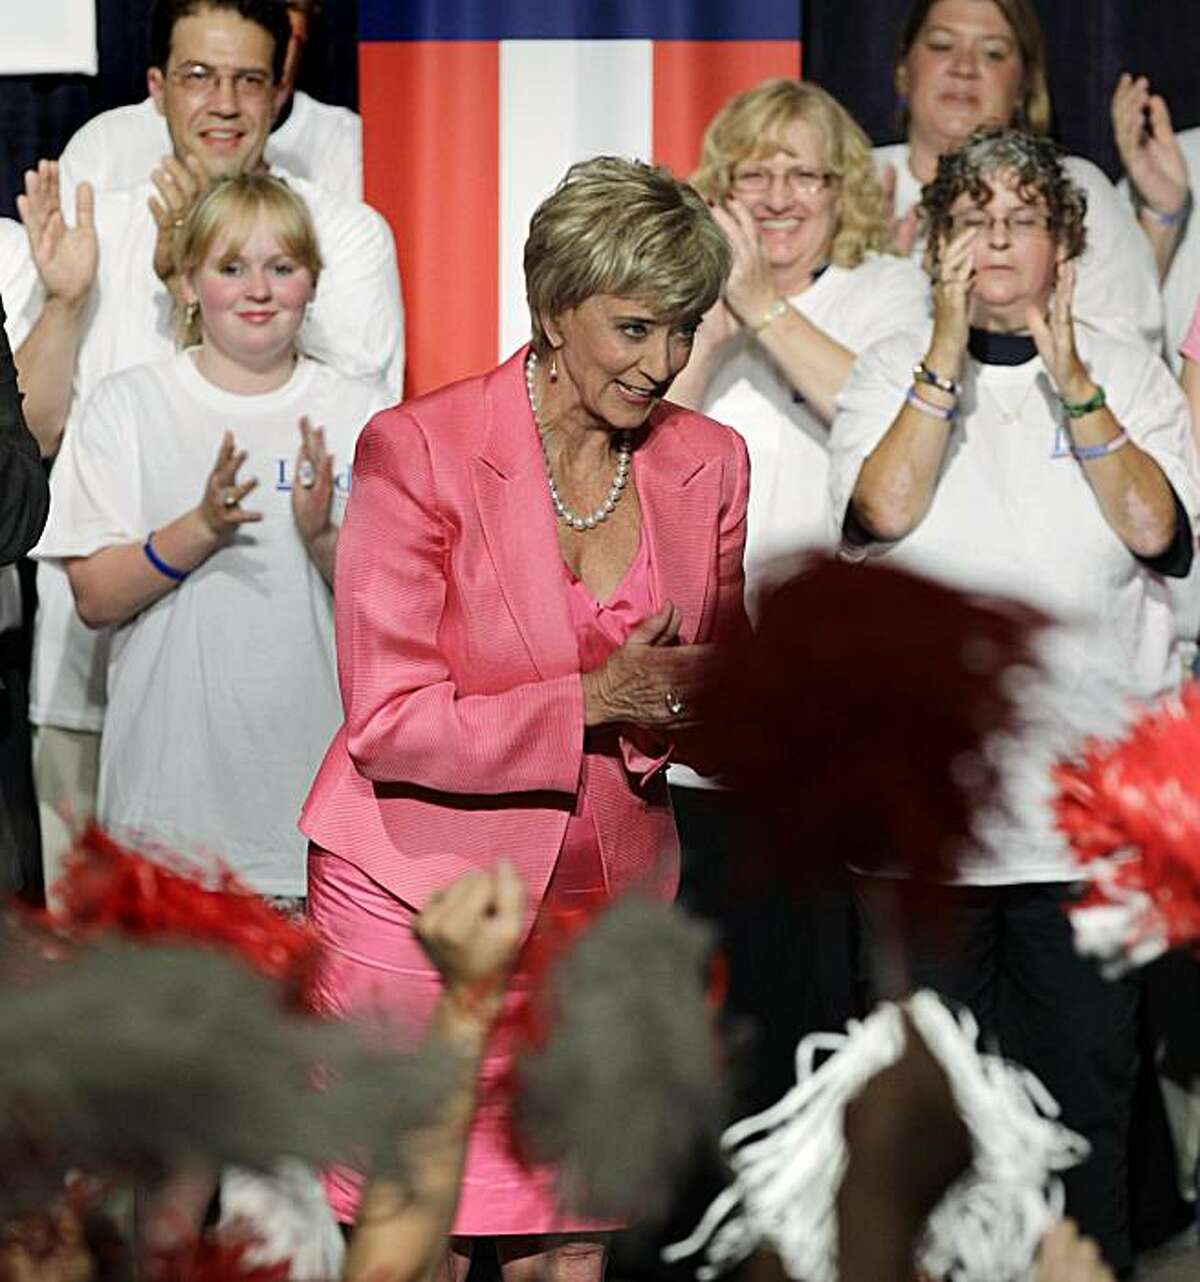 Republican candidate for U.S. Senate Linda McMahon, a former wrestling executive, bows as supporters cheer during her campaign party after winning the Republican primary in Cromwell, Conn., Tuesday, Aug. 10, 2010.